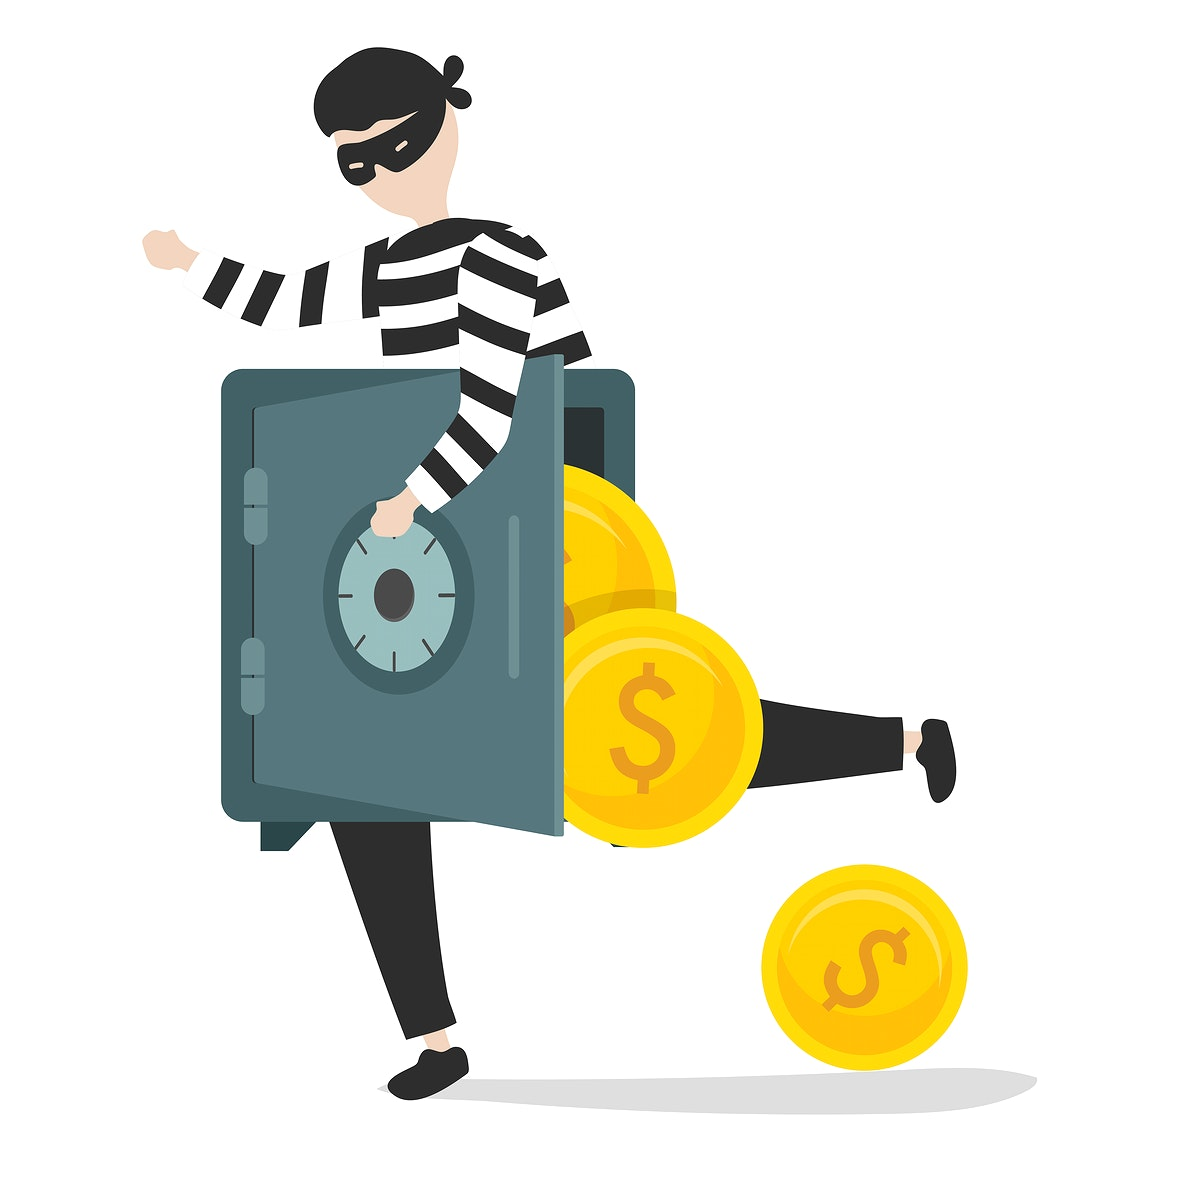 Illustration of a thief character